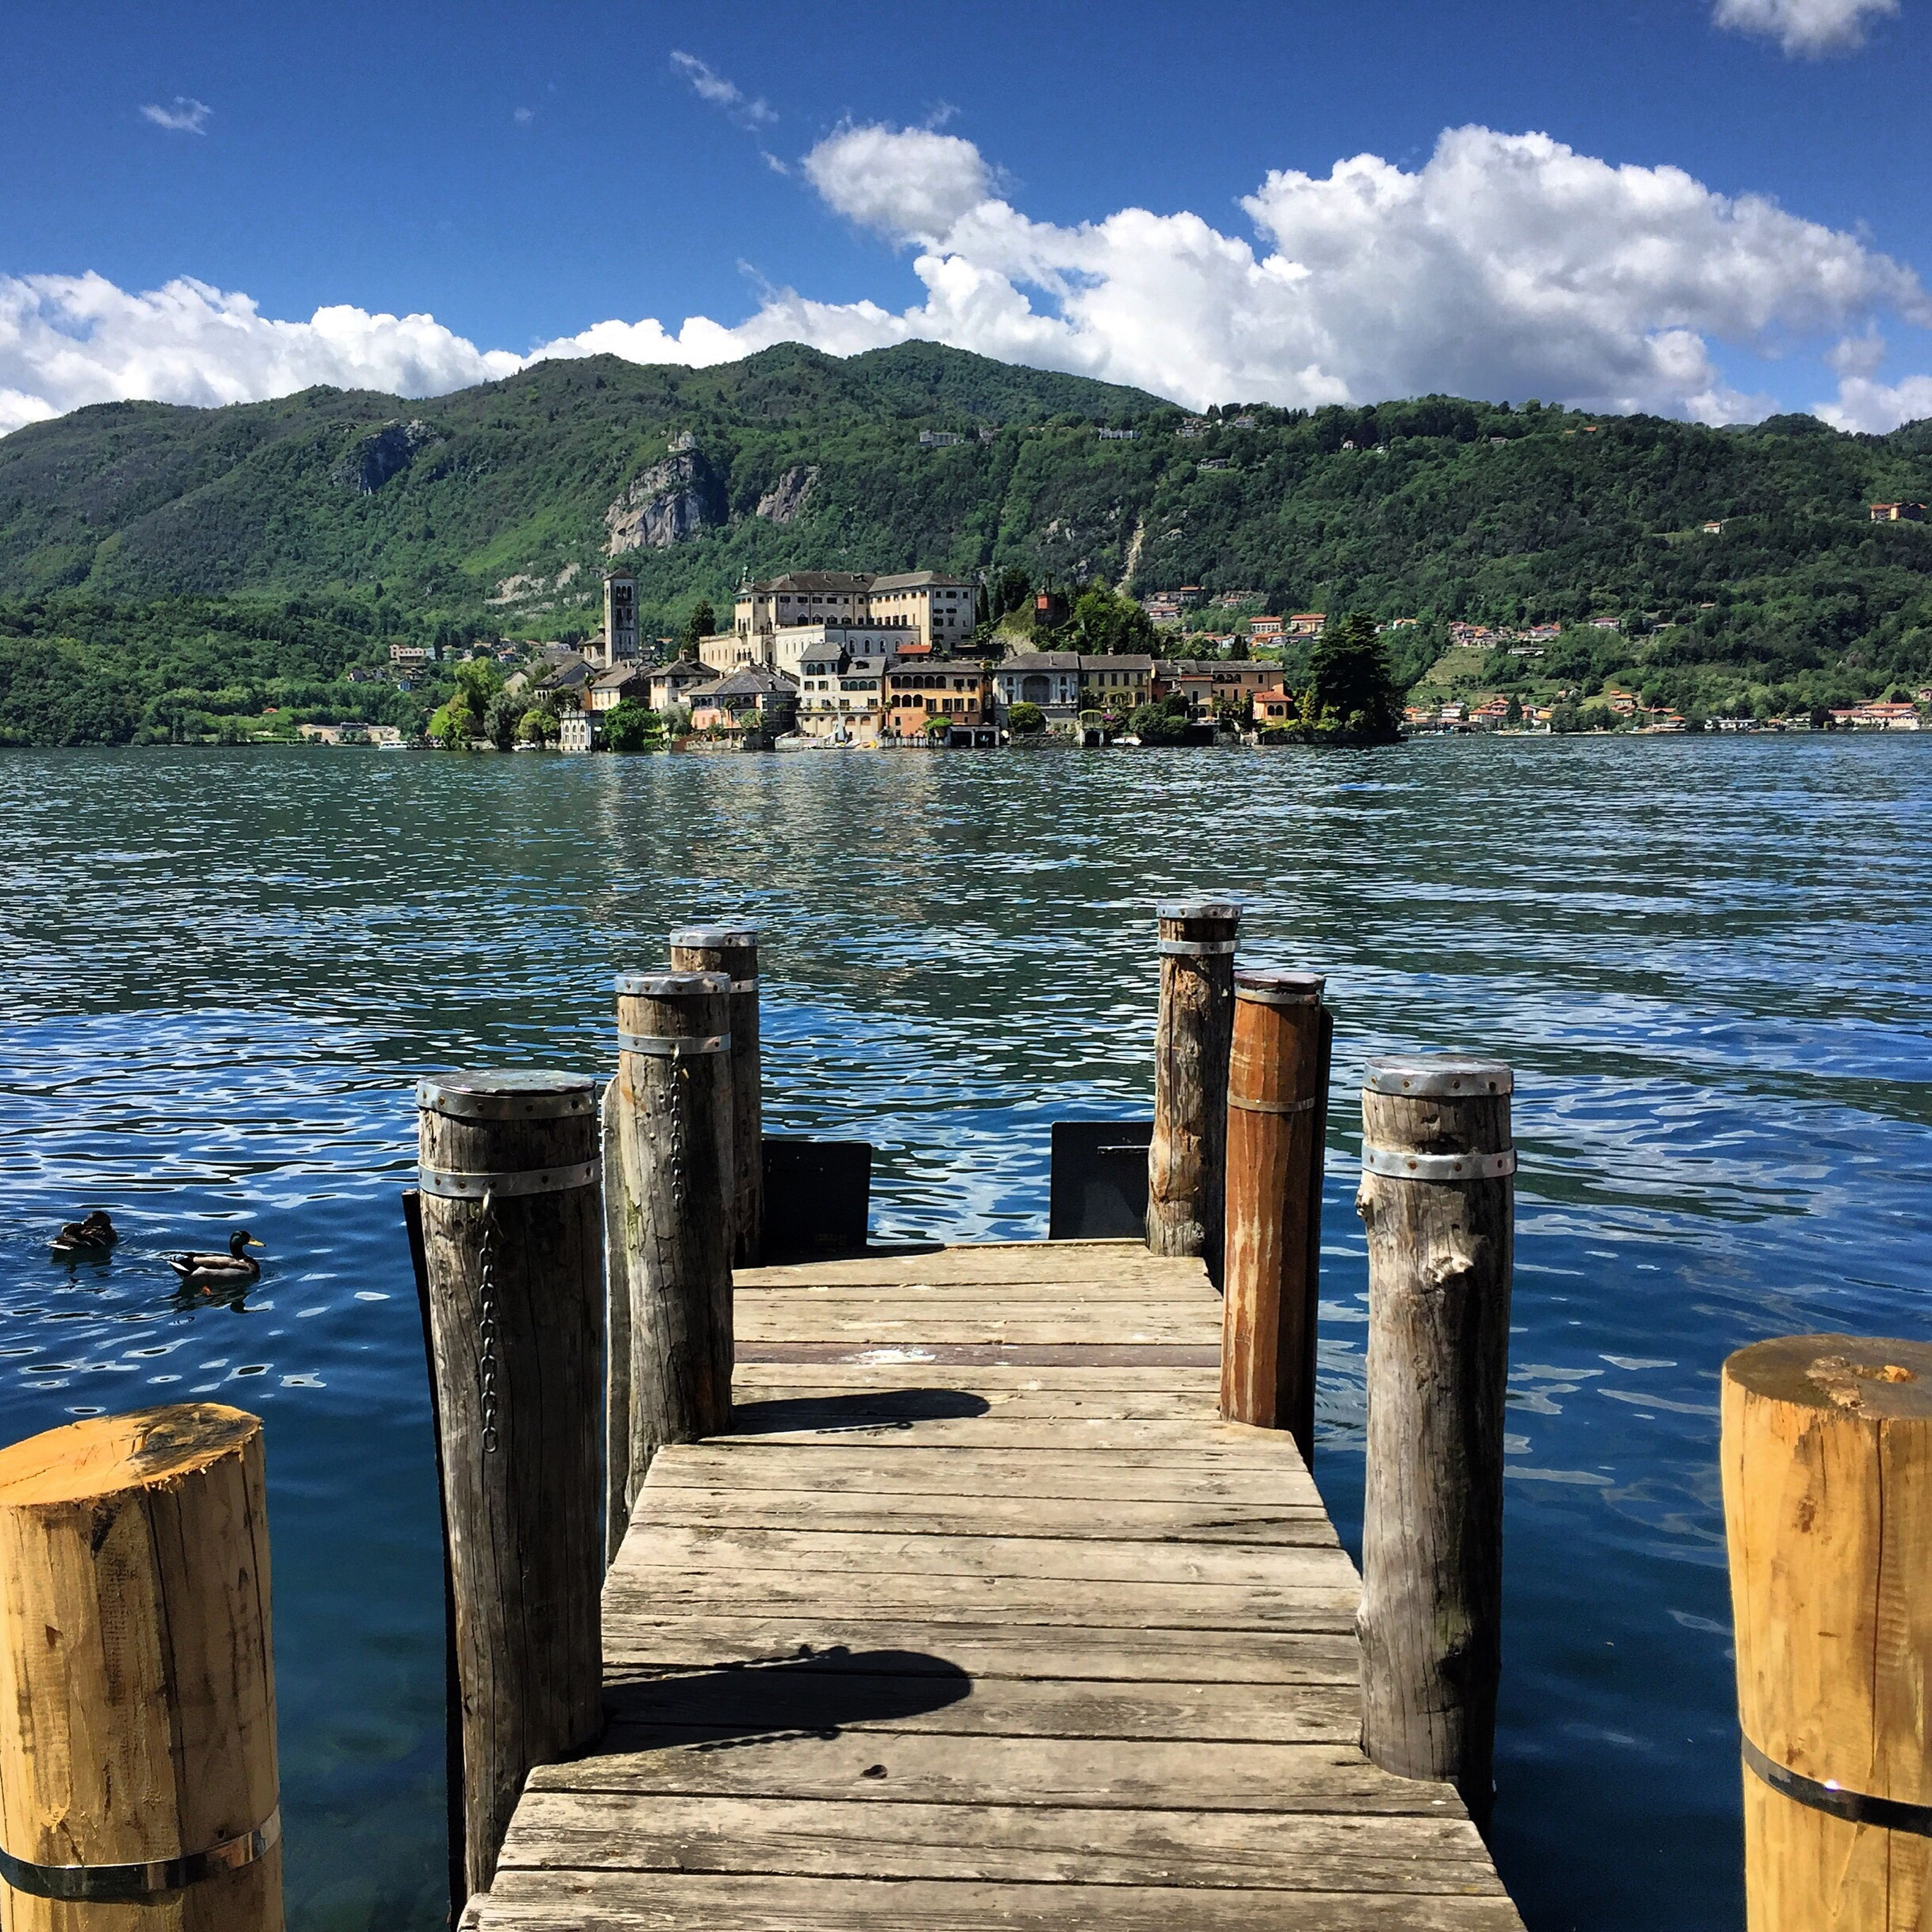 water, mountain, sky, pier, blue, tranquil scene, built structure, tranquility, wood - material, lake, the way forward, scenics, jetty, beauty in nature, architecture, cloud, nature, wood, mountain range, cloud - sky